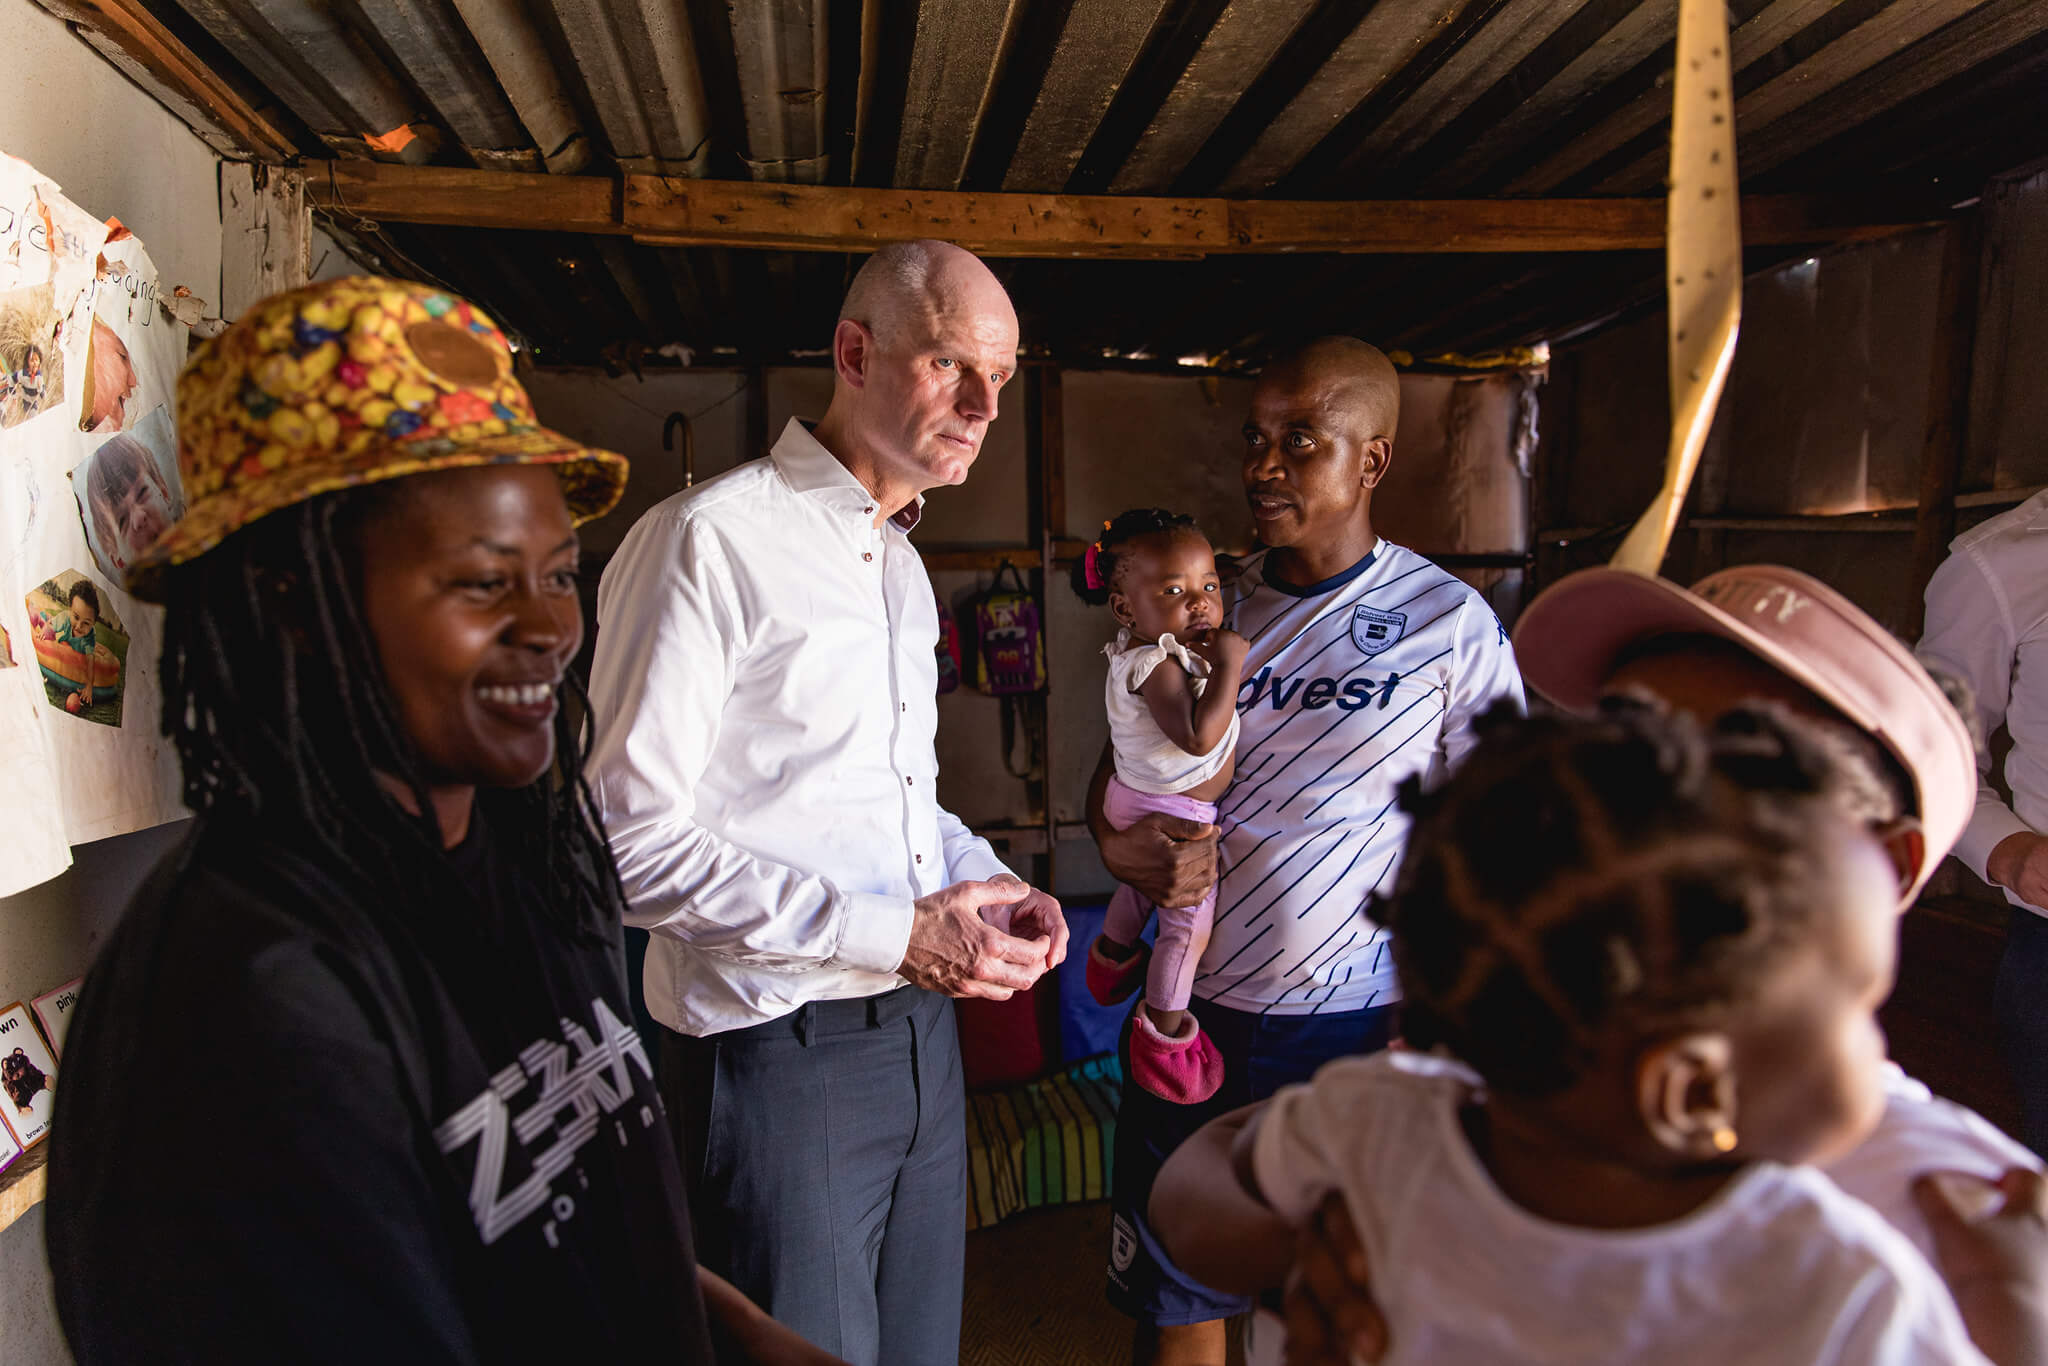 Links  - Dutch minister of foreign affairs Stef Blok during a visit to South Africa in February 2020. Ministerie van Buitenlandse Zaken